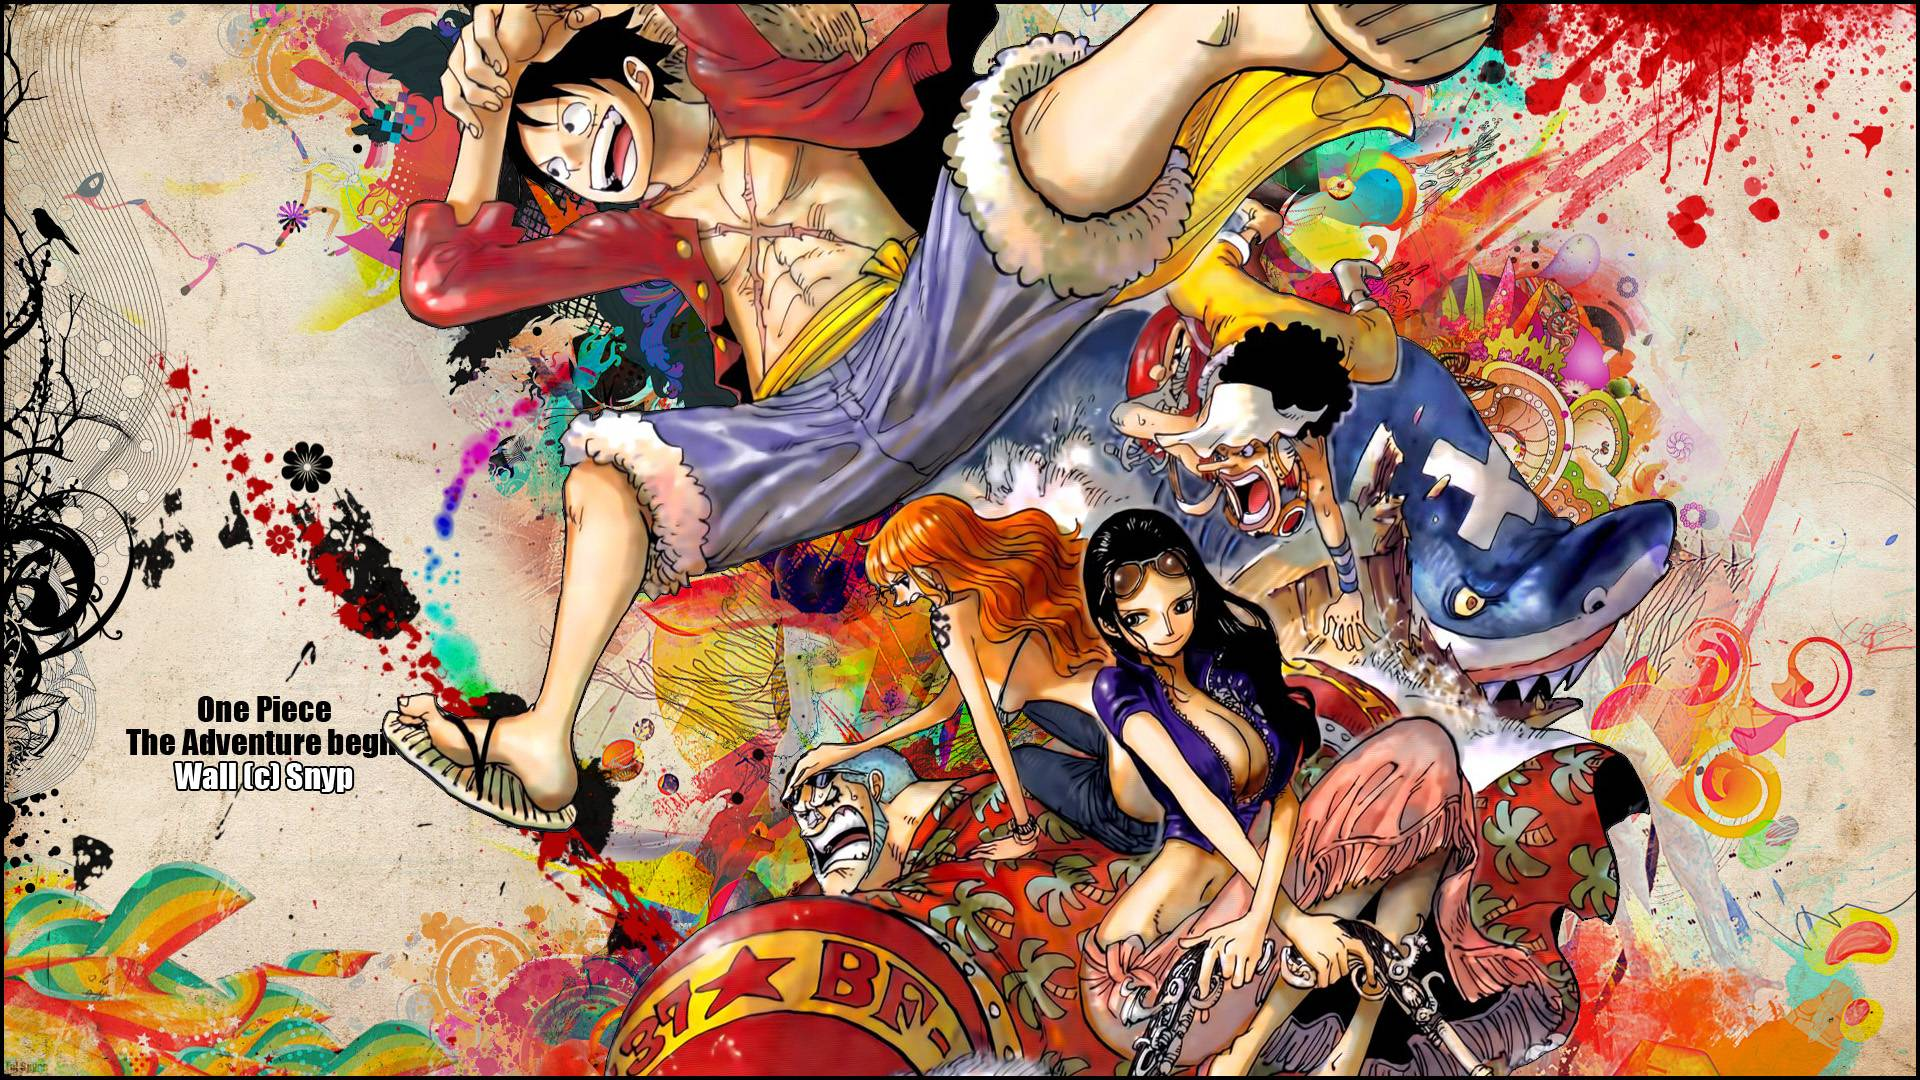 One piece iphone wallpaper iphonewallpapers 6401136 one piece iphone backgrounds 26 wallpapers adorable wallpapers anime wallpaper iphone anime. One Piece Wallpaper HD and 4K - Trafoos